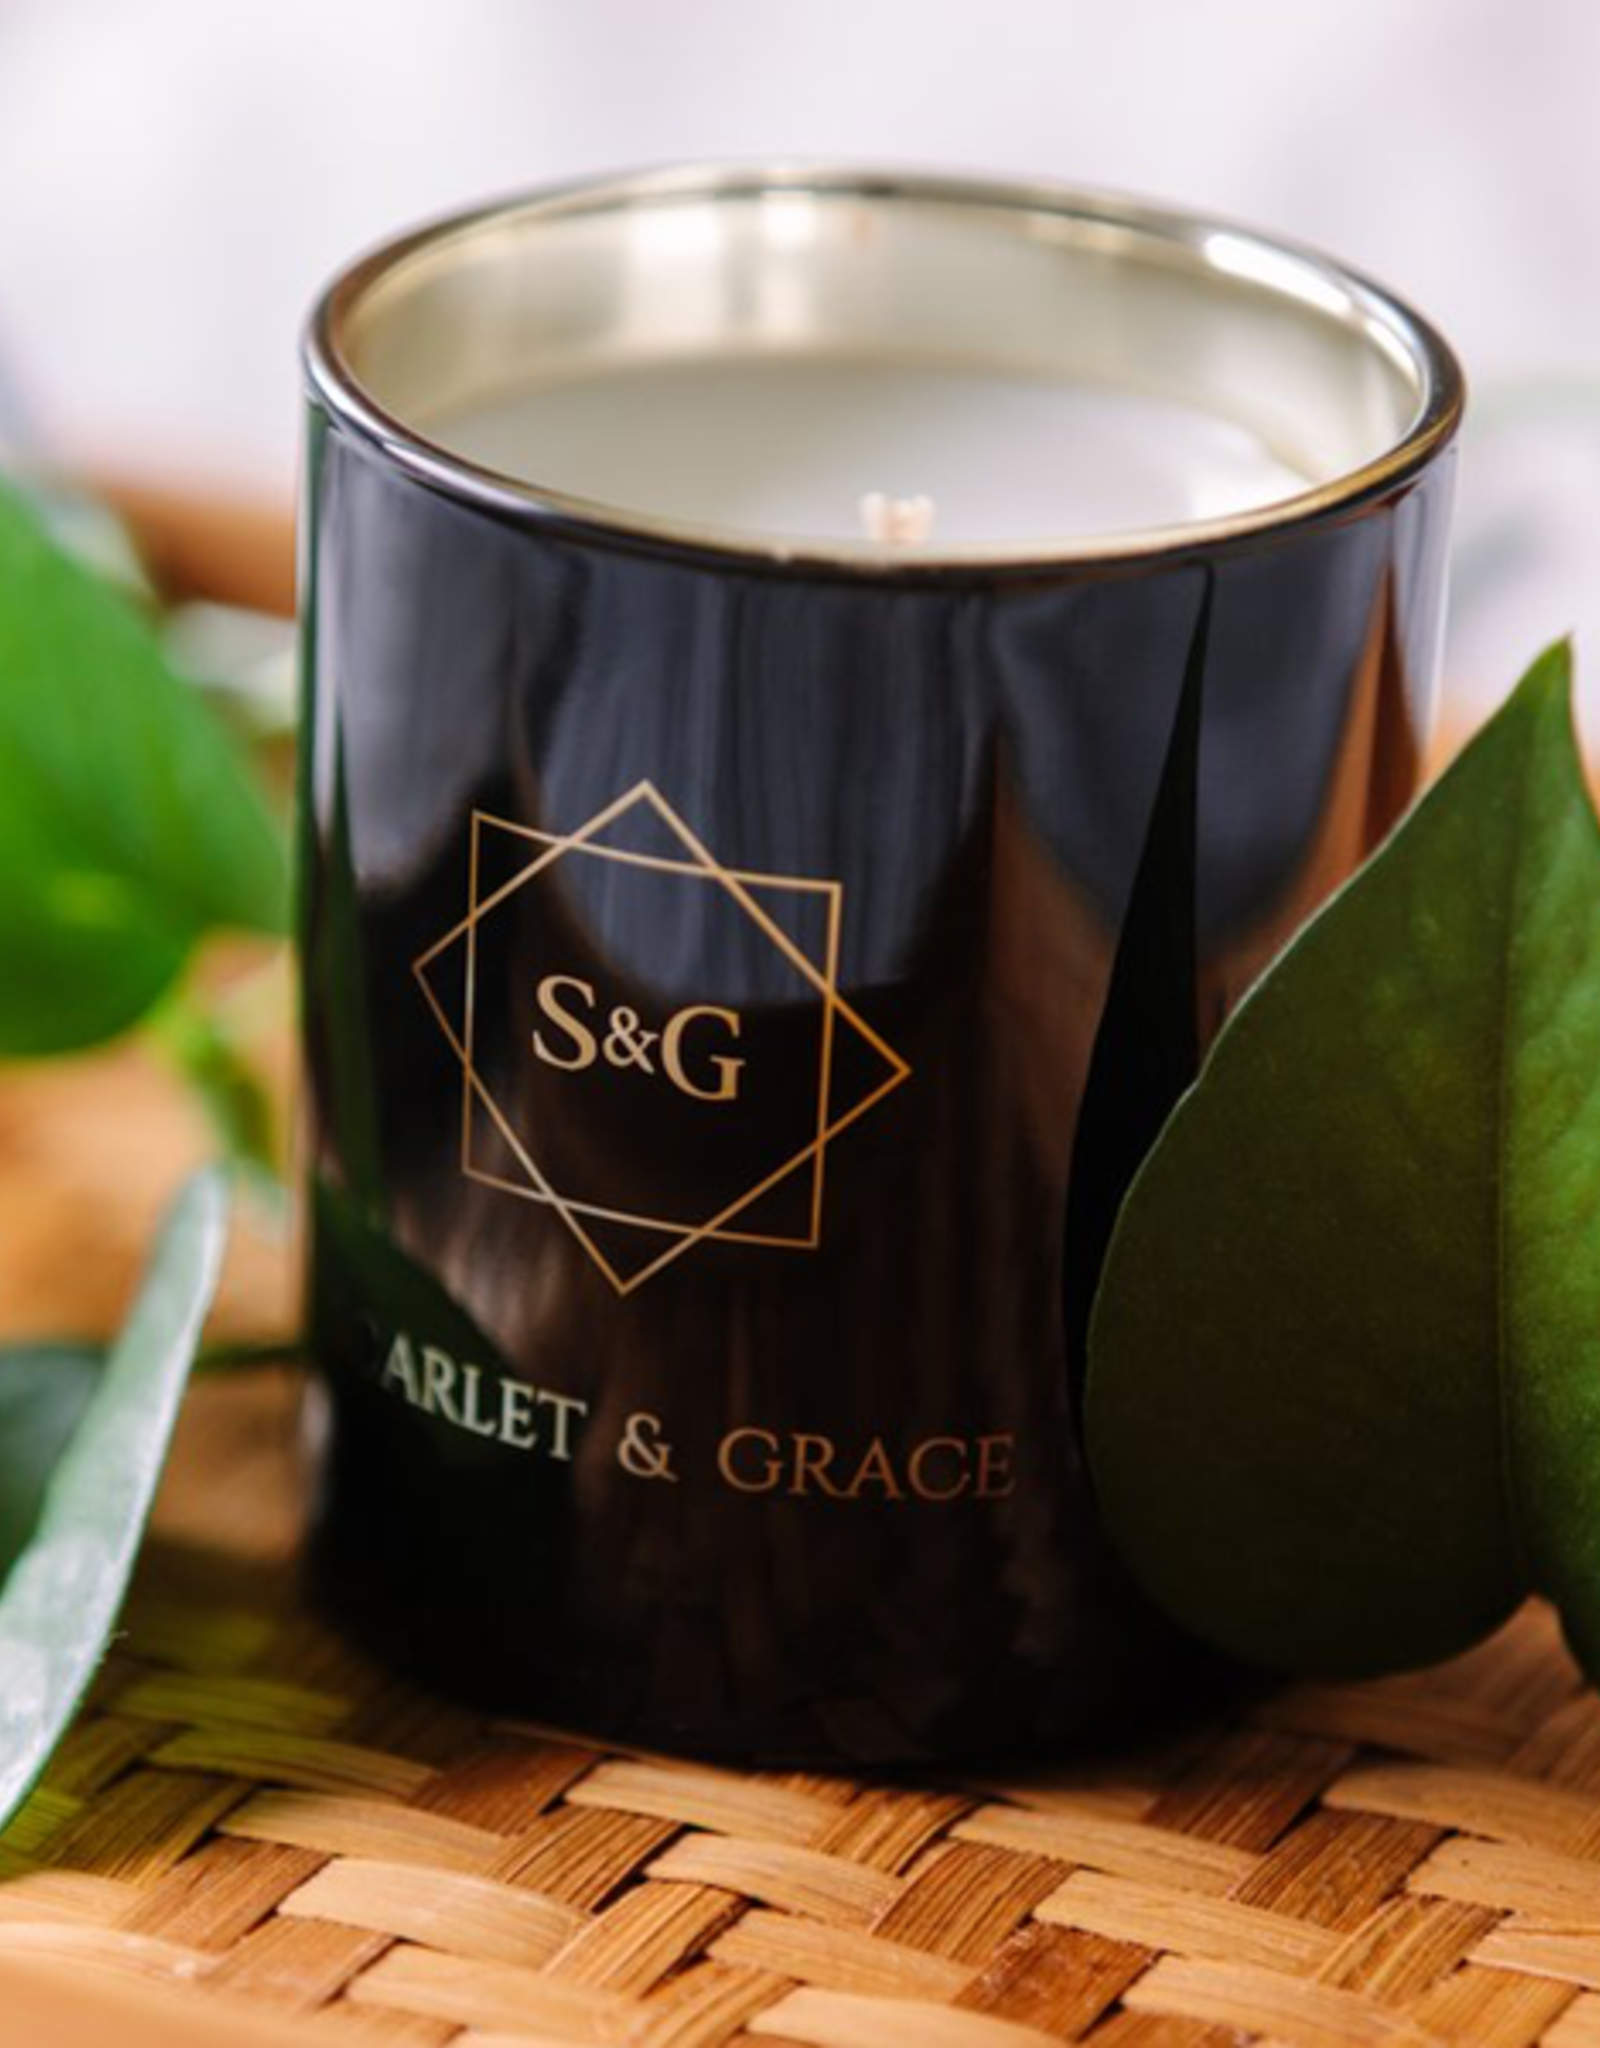 Scarlet & Grace 340g Soy Wax Candle - French Lavender